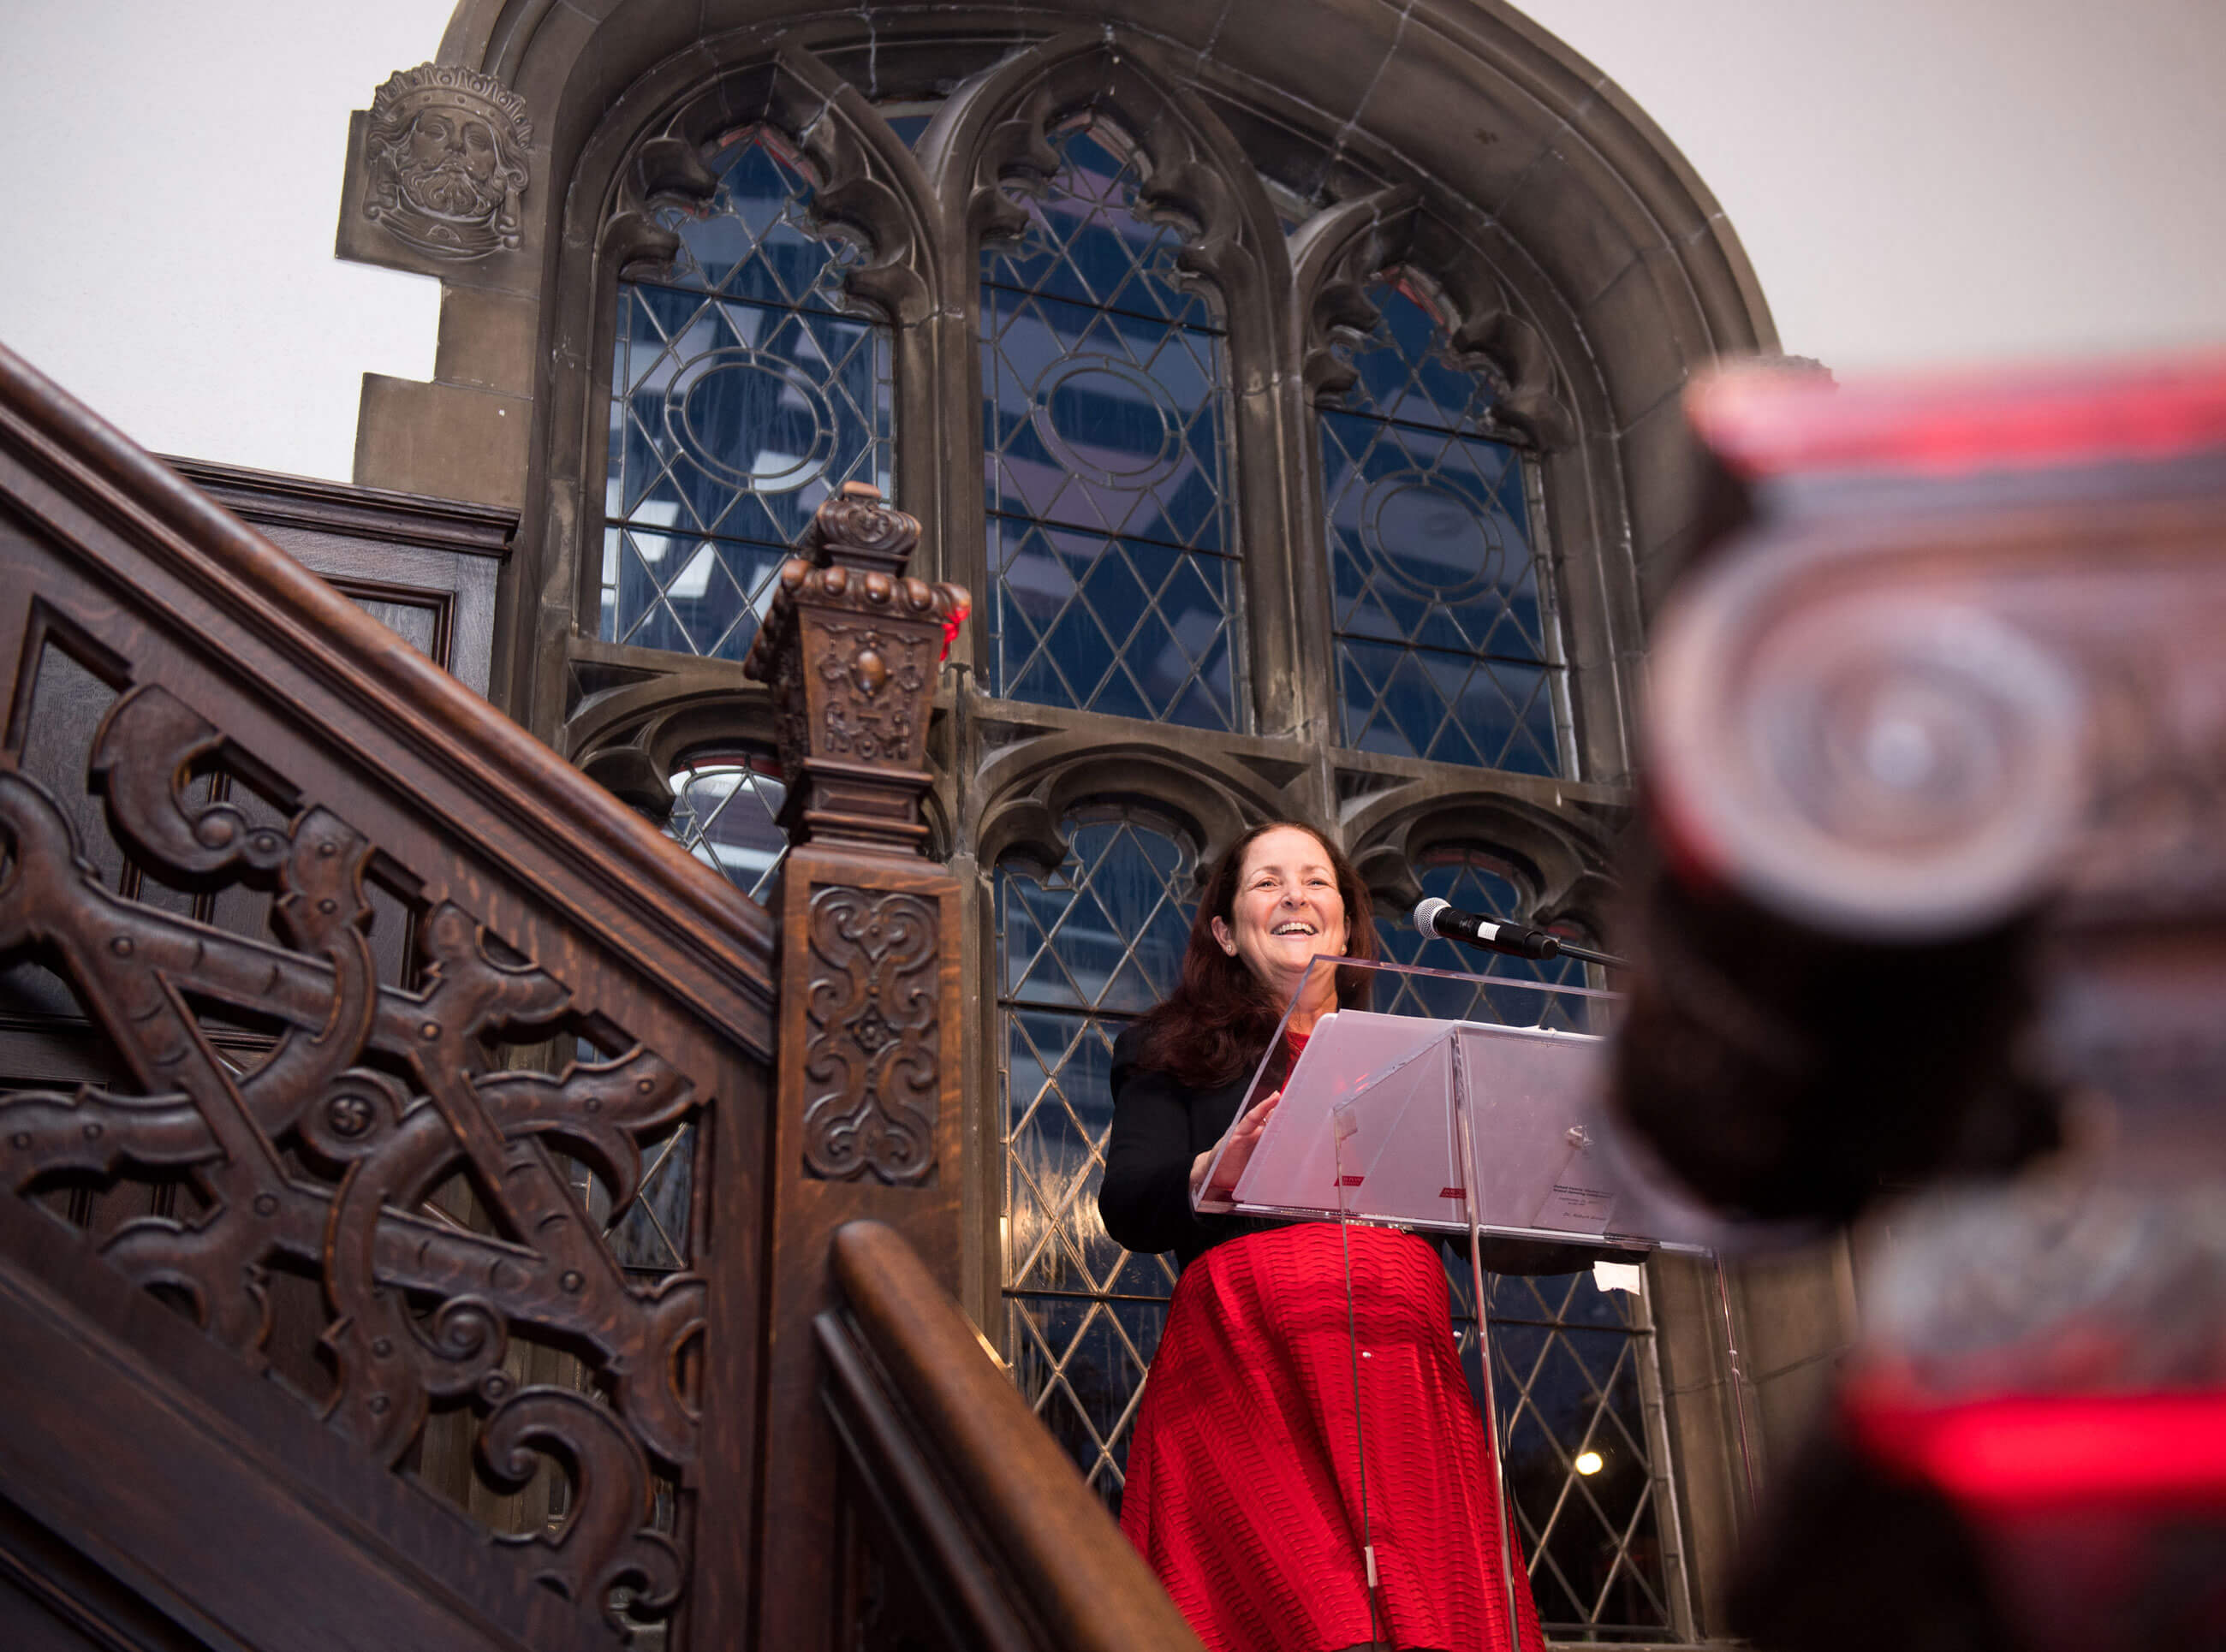 Image of a woman in a red dress speaking at a podium at a landing on a detailed wooden staircase, with historic windows in a stone arch behind her.